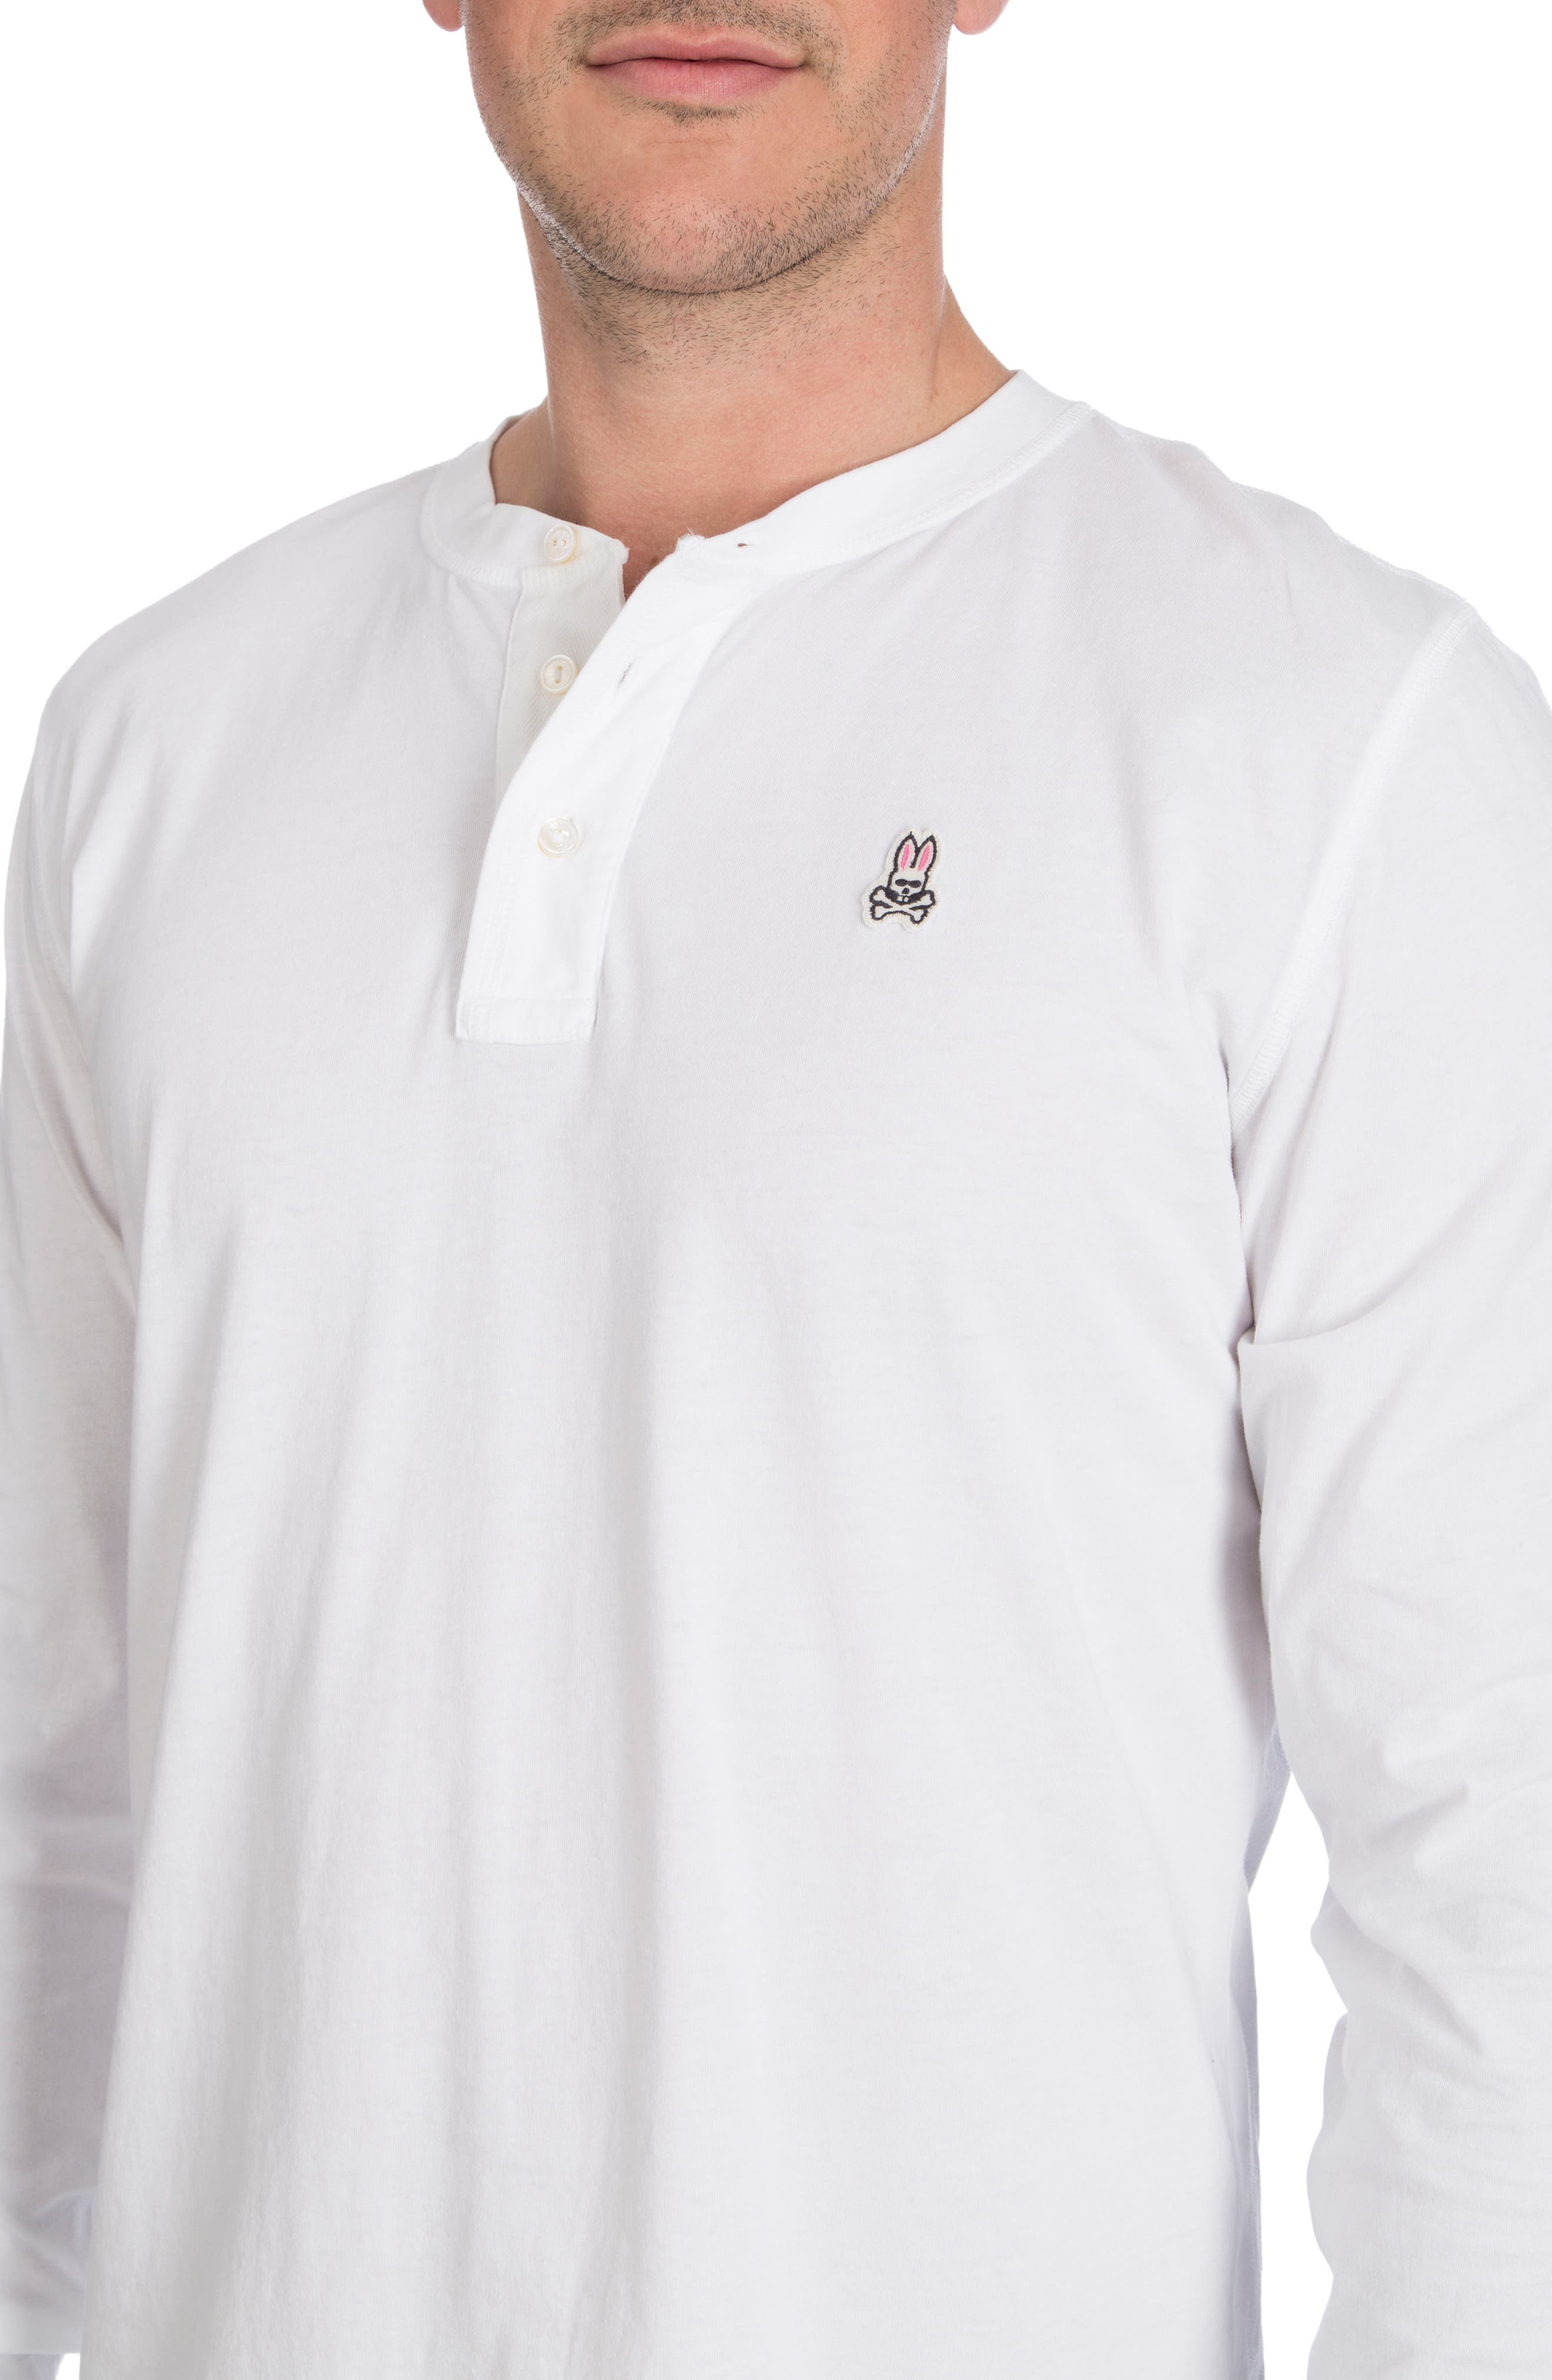 Biltmore Henley T-Shirt,                             Alternate thumbnail 3, color,                             White